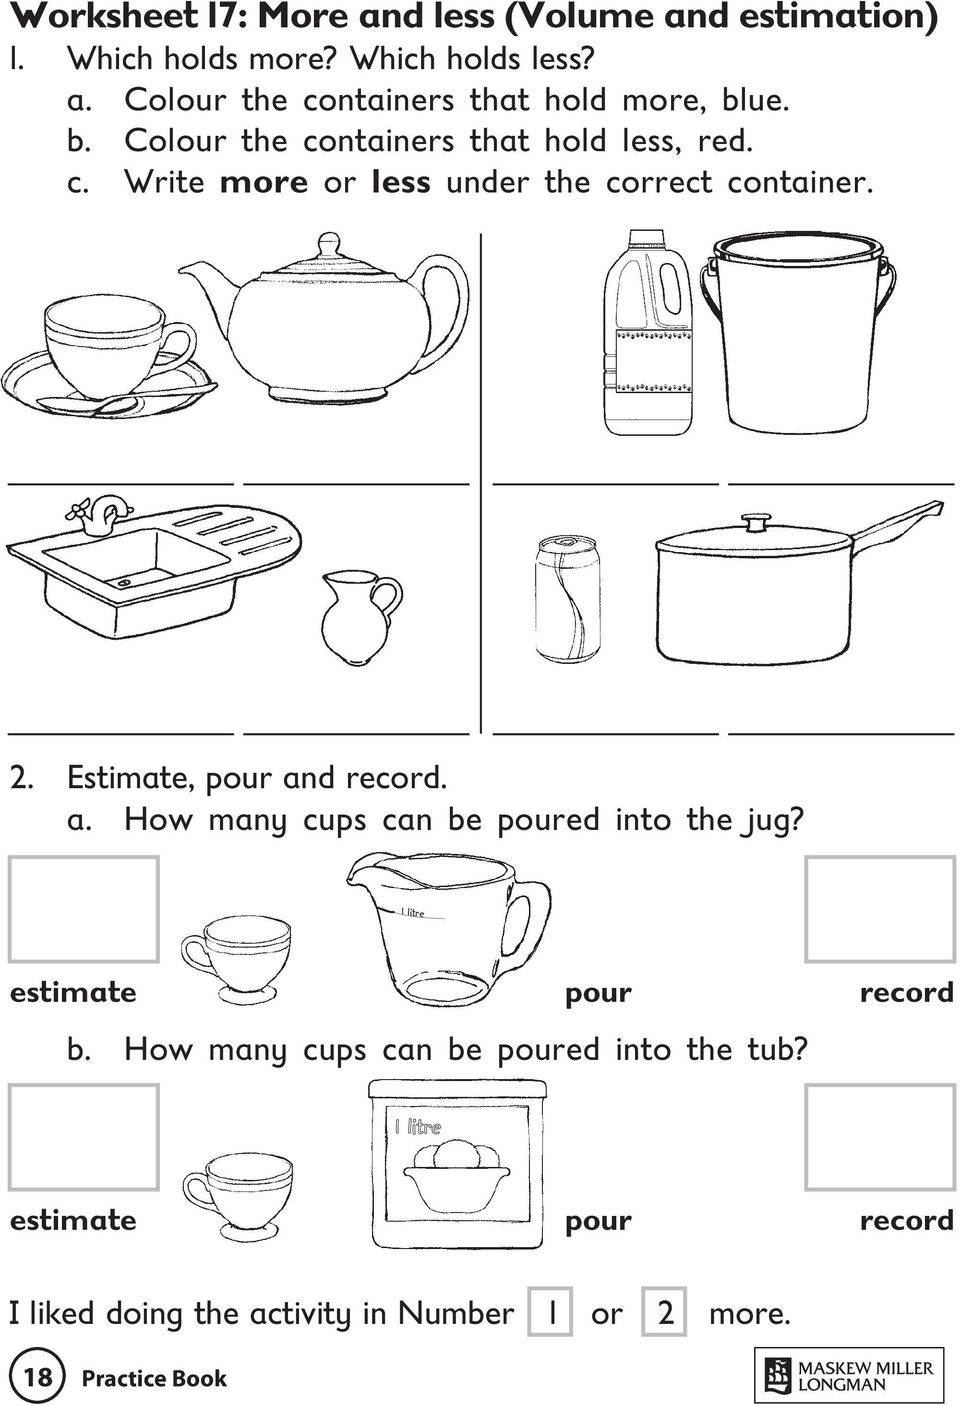 Estimate, pour and record. a. How many cups can be poured into the jug? 1 litre estimate pour record b.